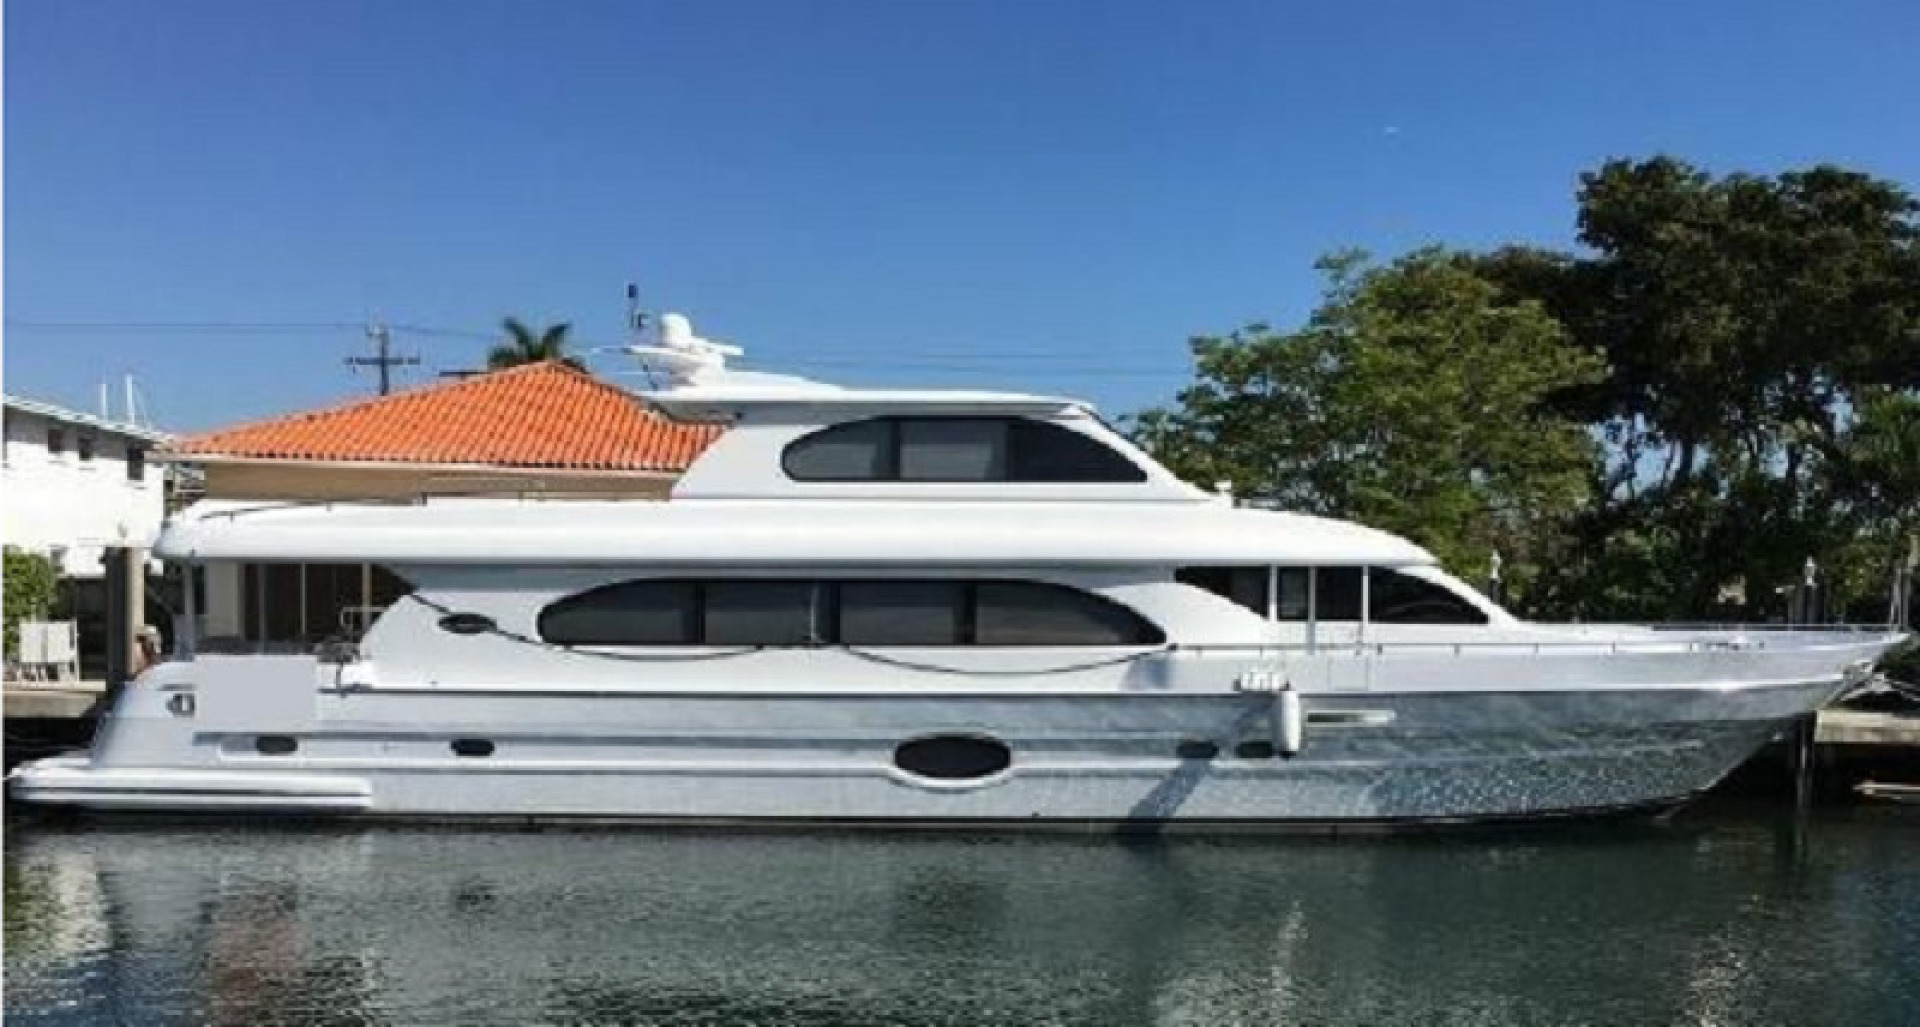 Tarrab-Tri Deck Motor yacht 1990 -Fort Lauderdale-Florida-United States-1551611 | Thumbnail